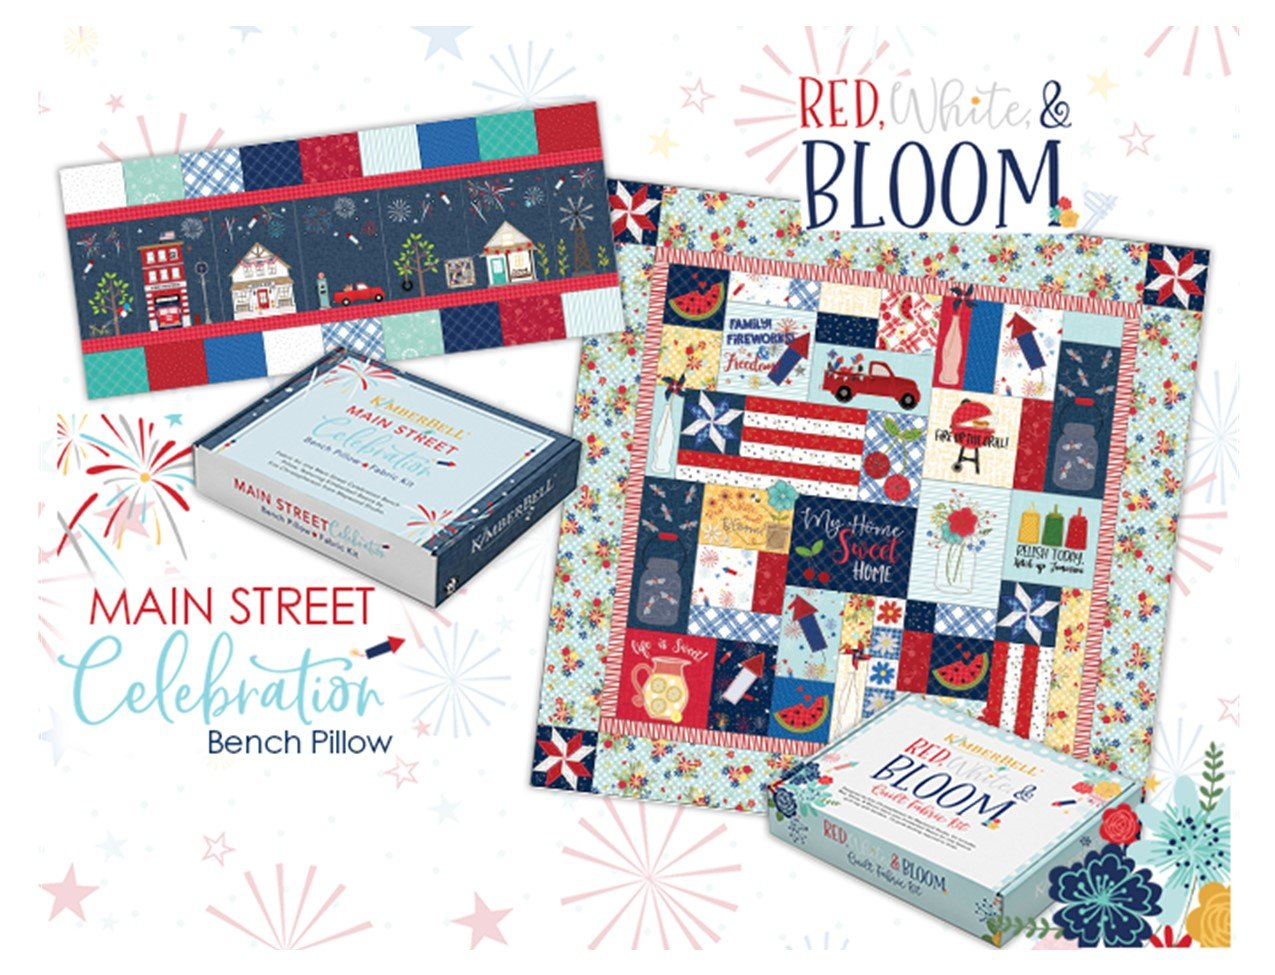 I want it all - Embroidery Version: Kimberbell Red, White & Bloom Bench Pillow and Quilt